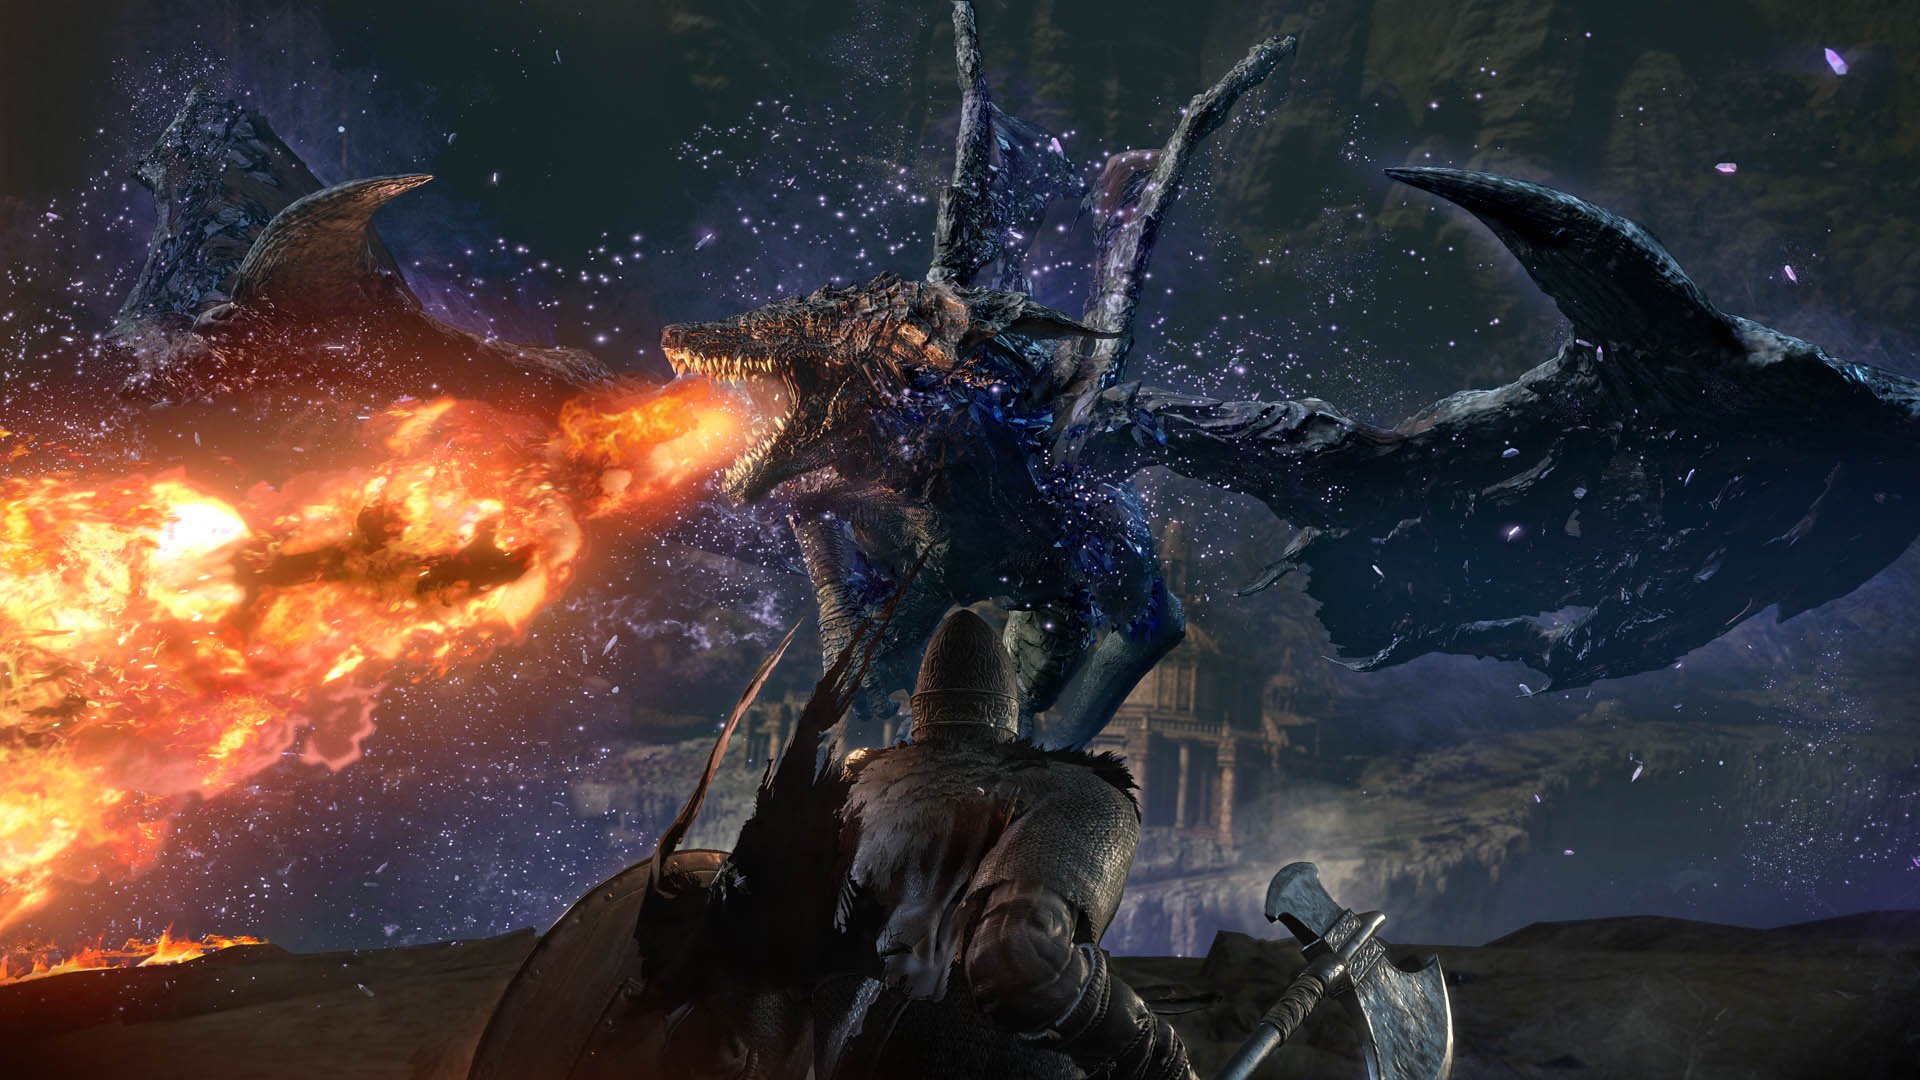 Dark Souls Iii The Ringed City Dlc Screens And Artwork The Escapist